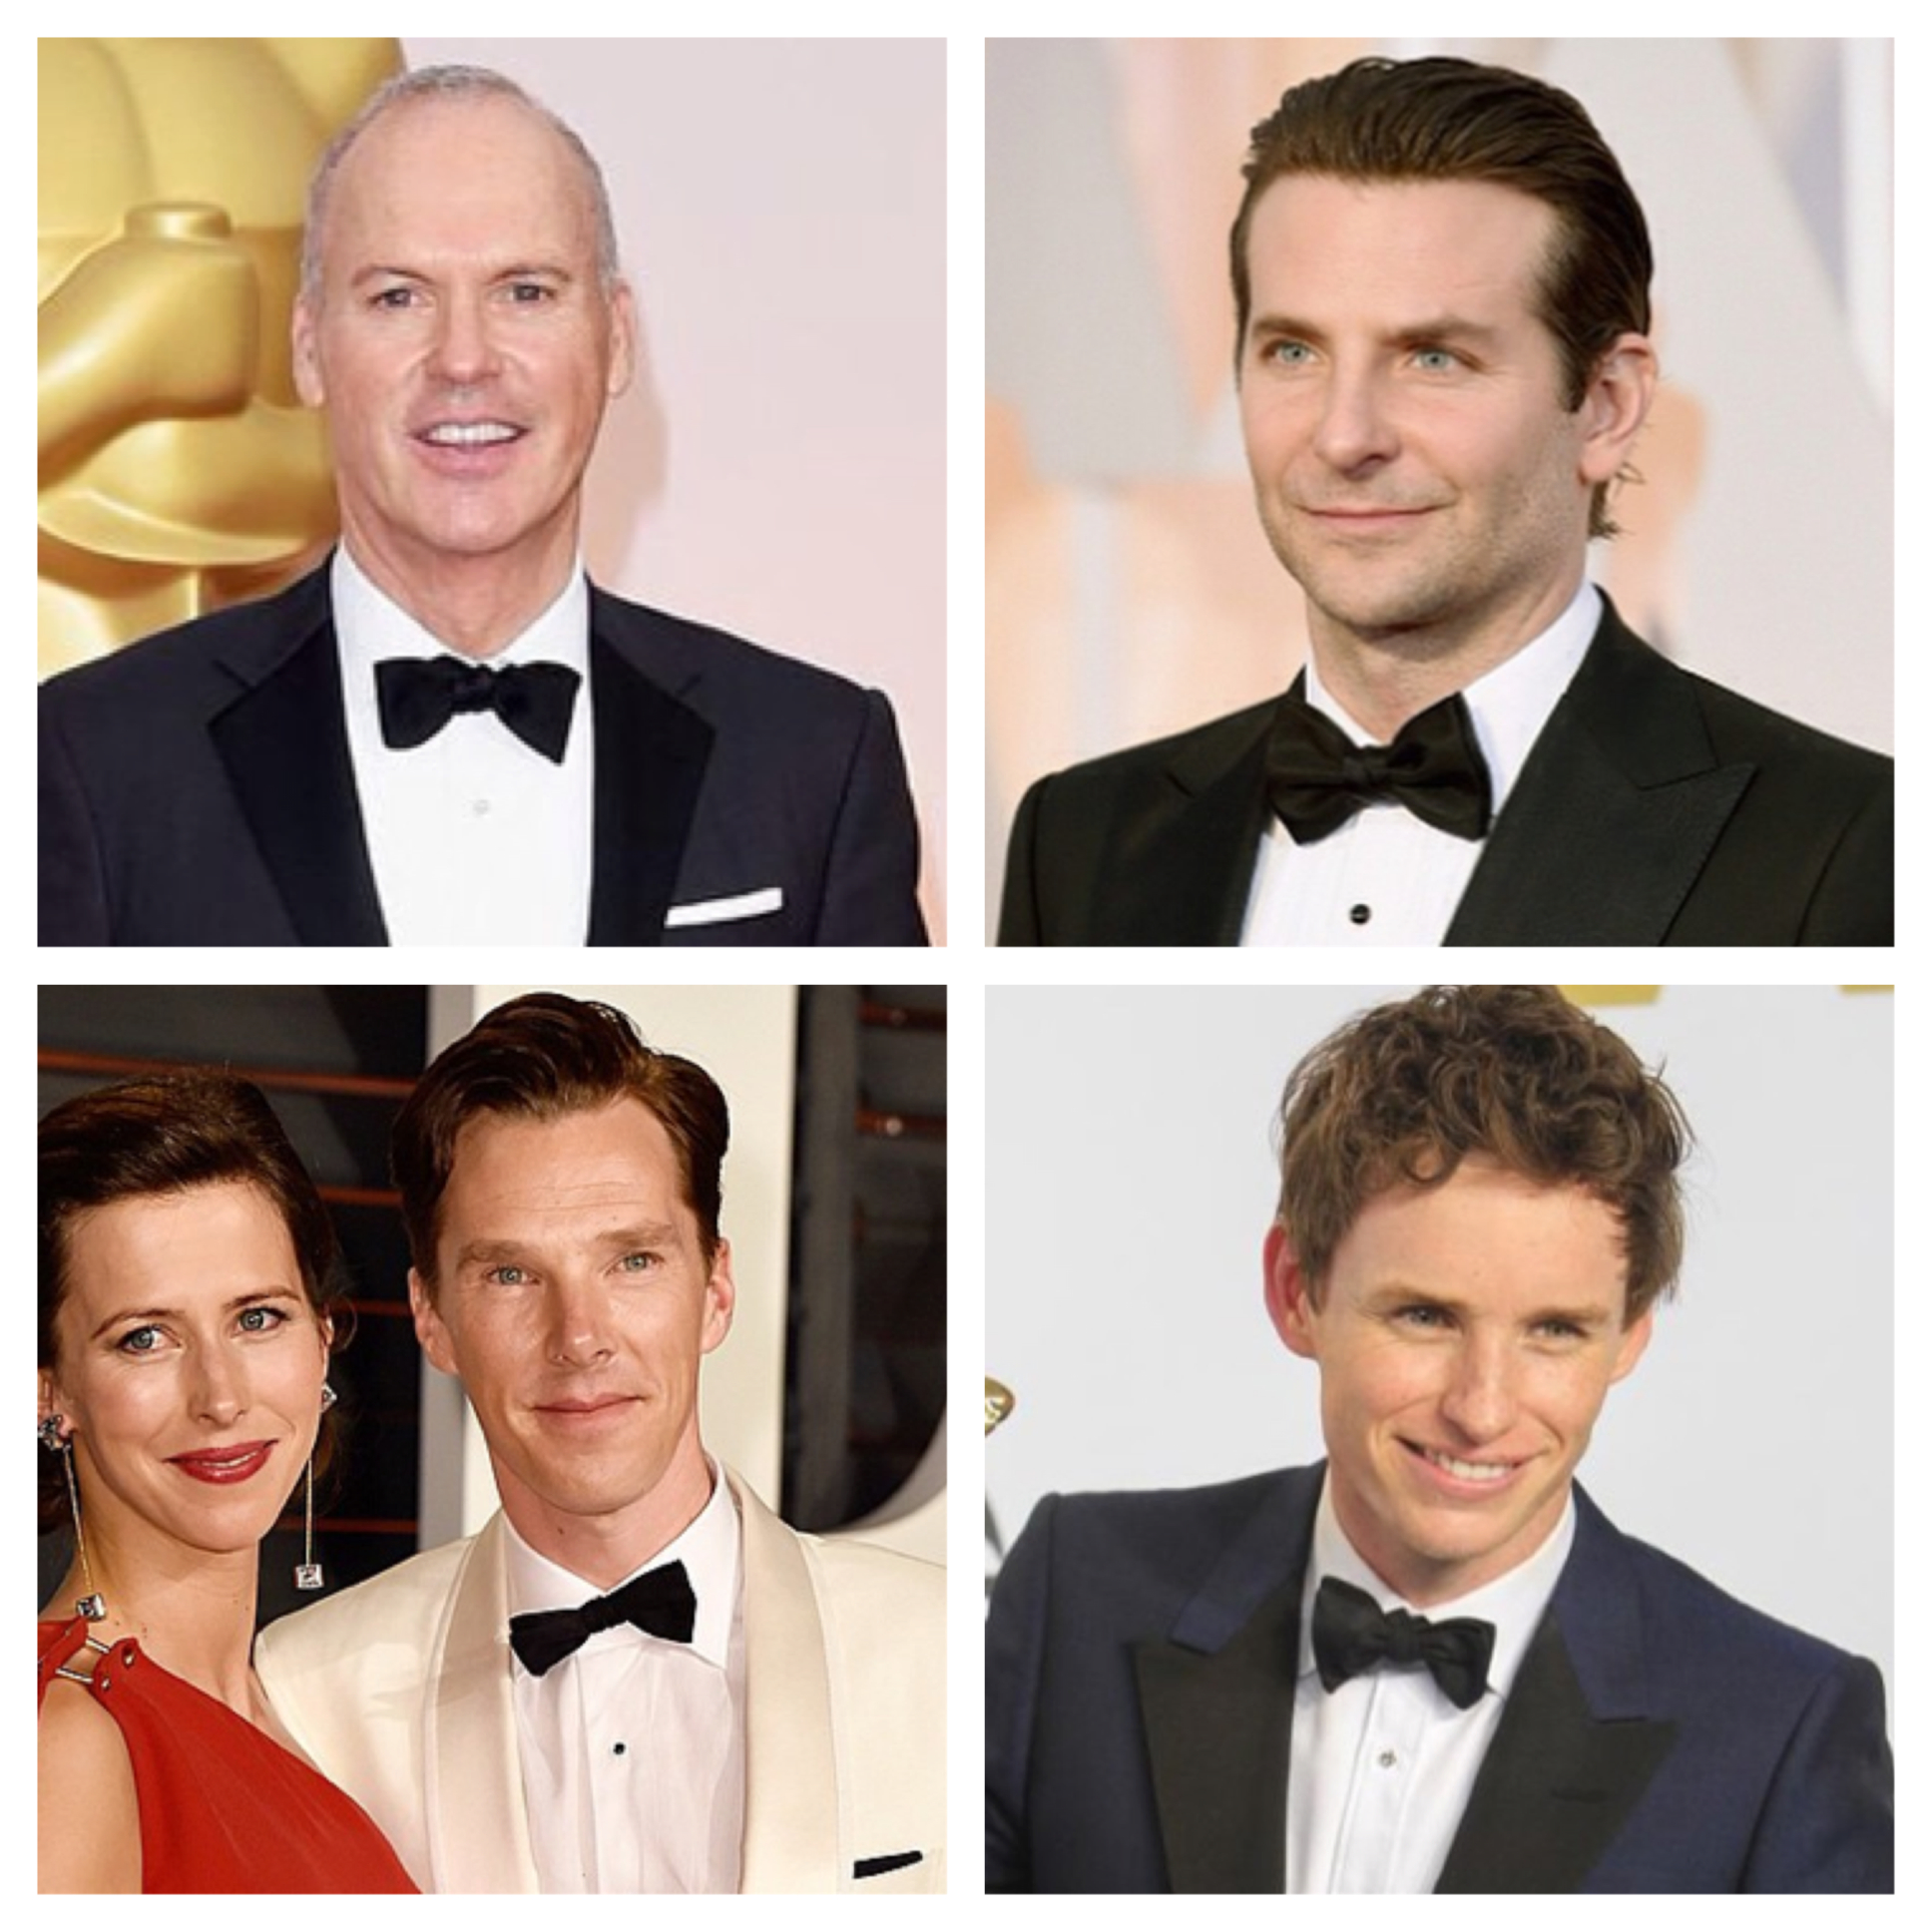 Michael Keaton (top left), Bradley Cooper (top right), Benedict Cumberbatch (bottom left) and Eddie Redmayne (bottom right)